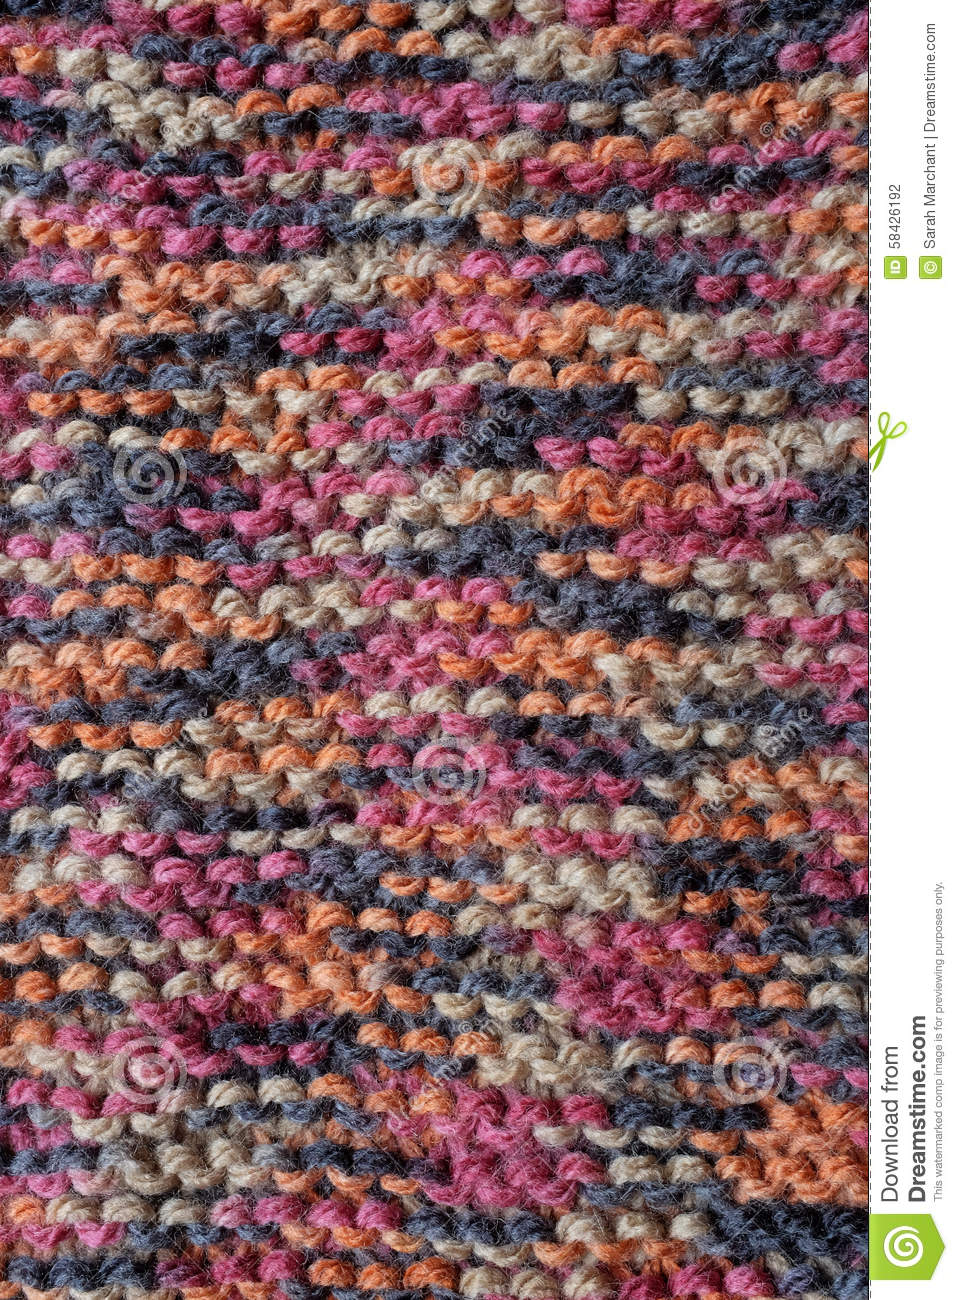 Best Knitting Stitches For Multicolor Yarn : Length Of Knitting In Multi-coloured Yarn Stock Photo - Image: 58426192